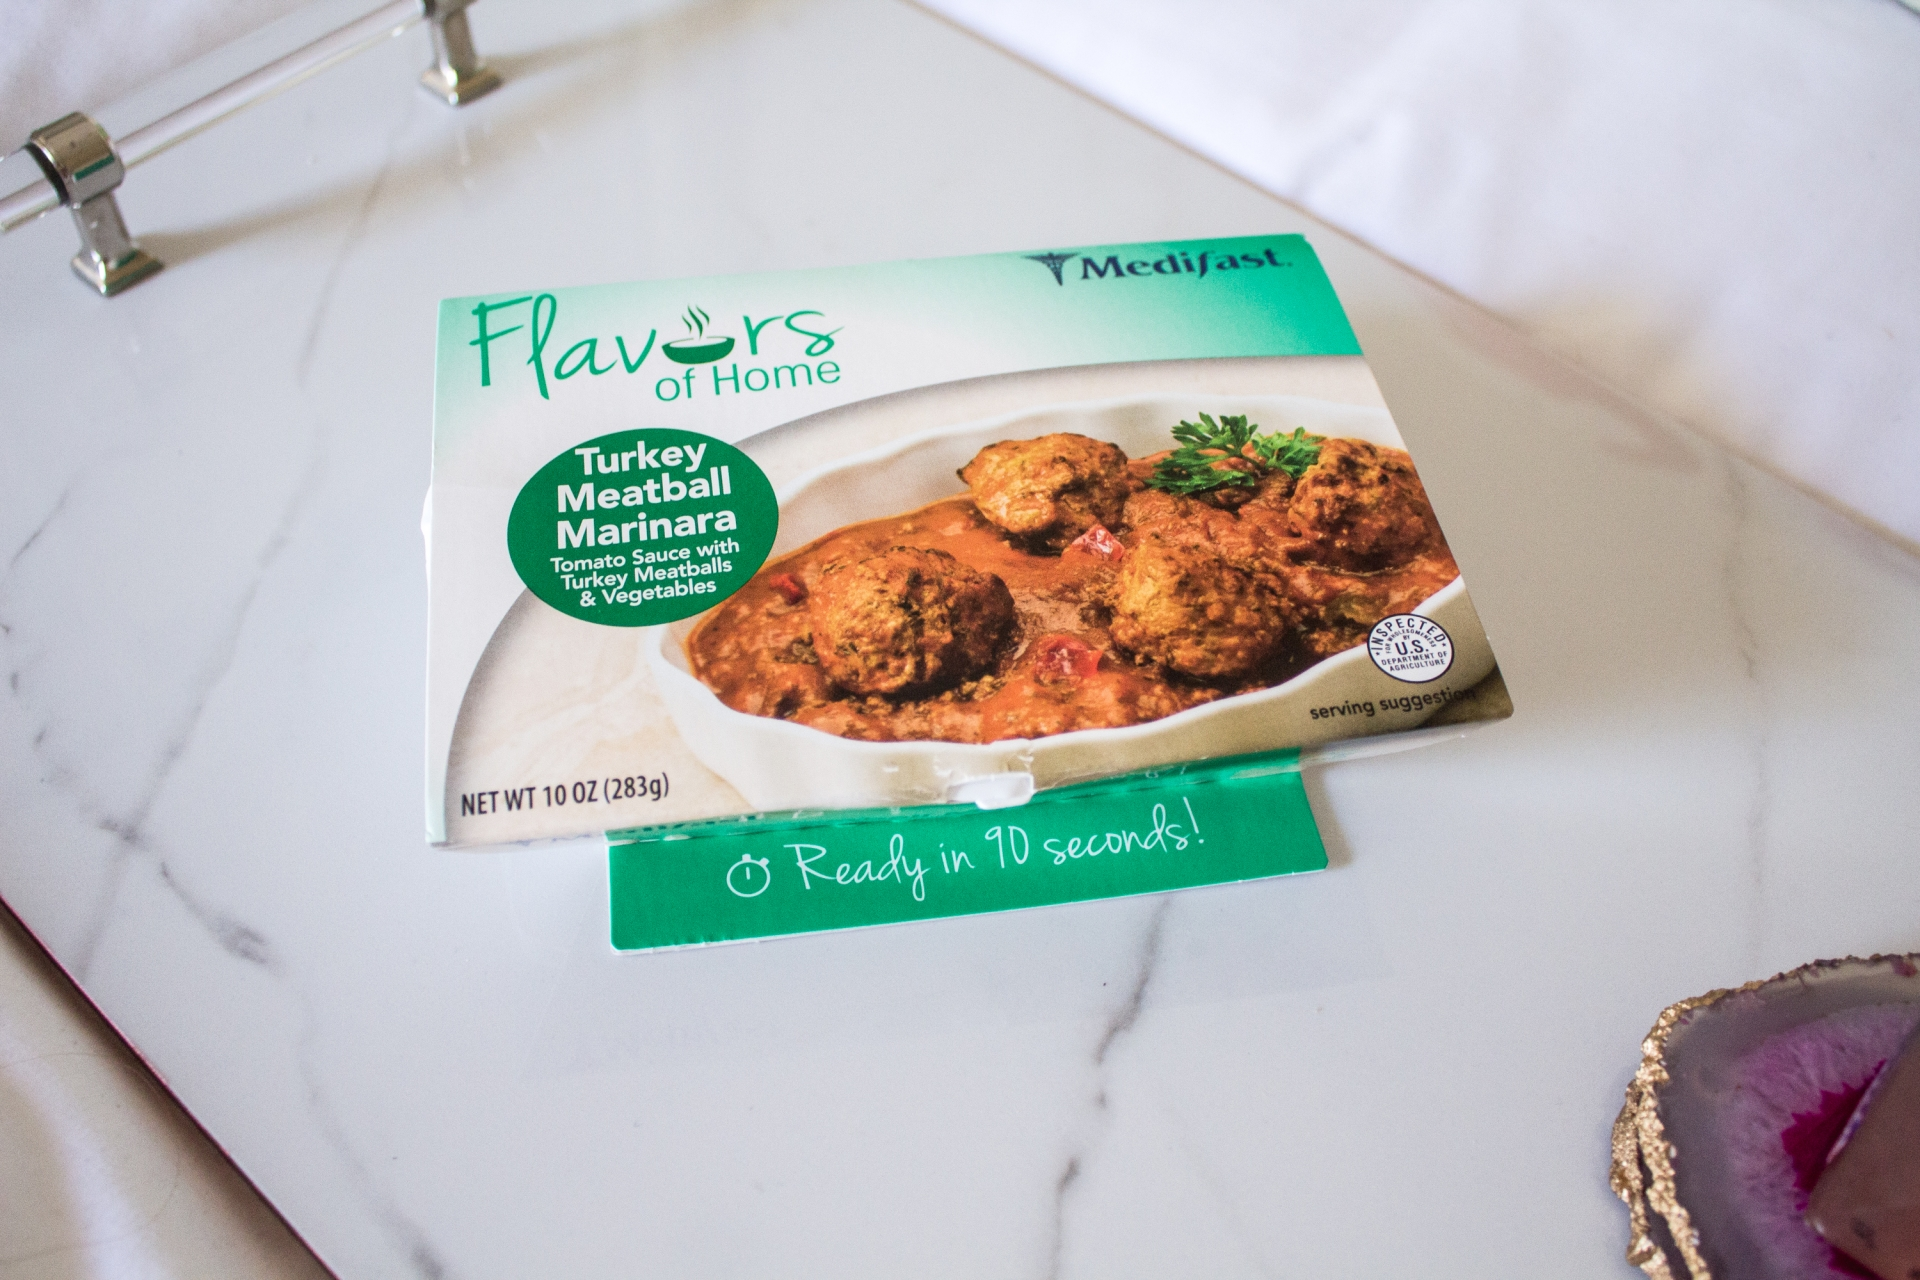 Medifast-Go-Lean-And-Green-Meals-Flavors-Of-Home-Turkey-Meatball-Marinara